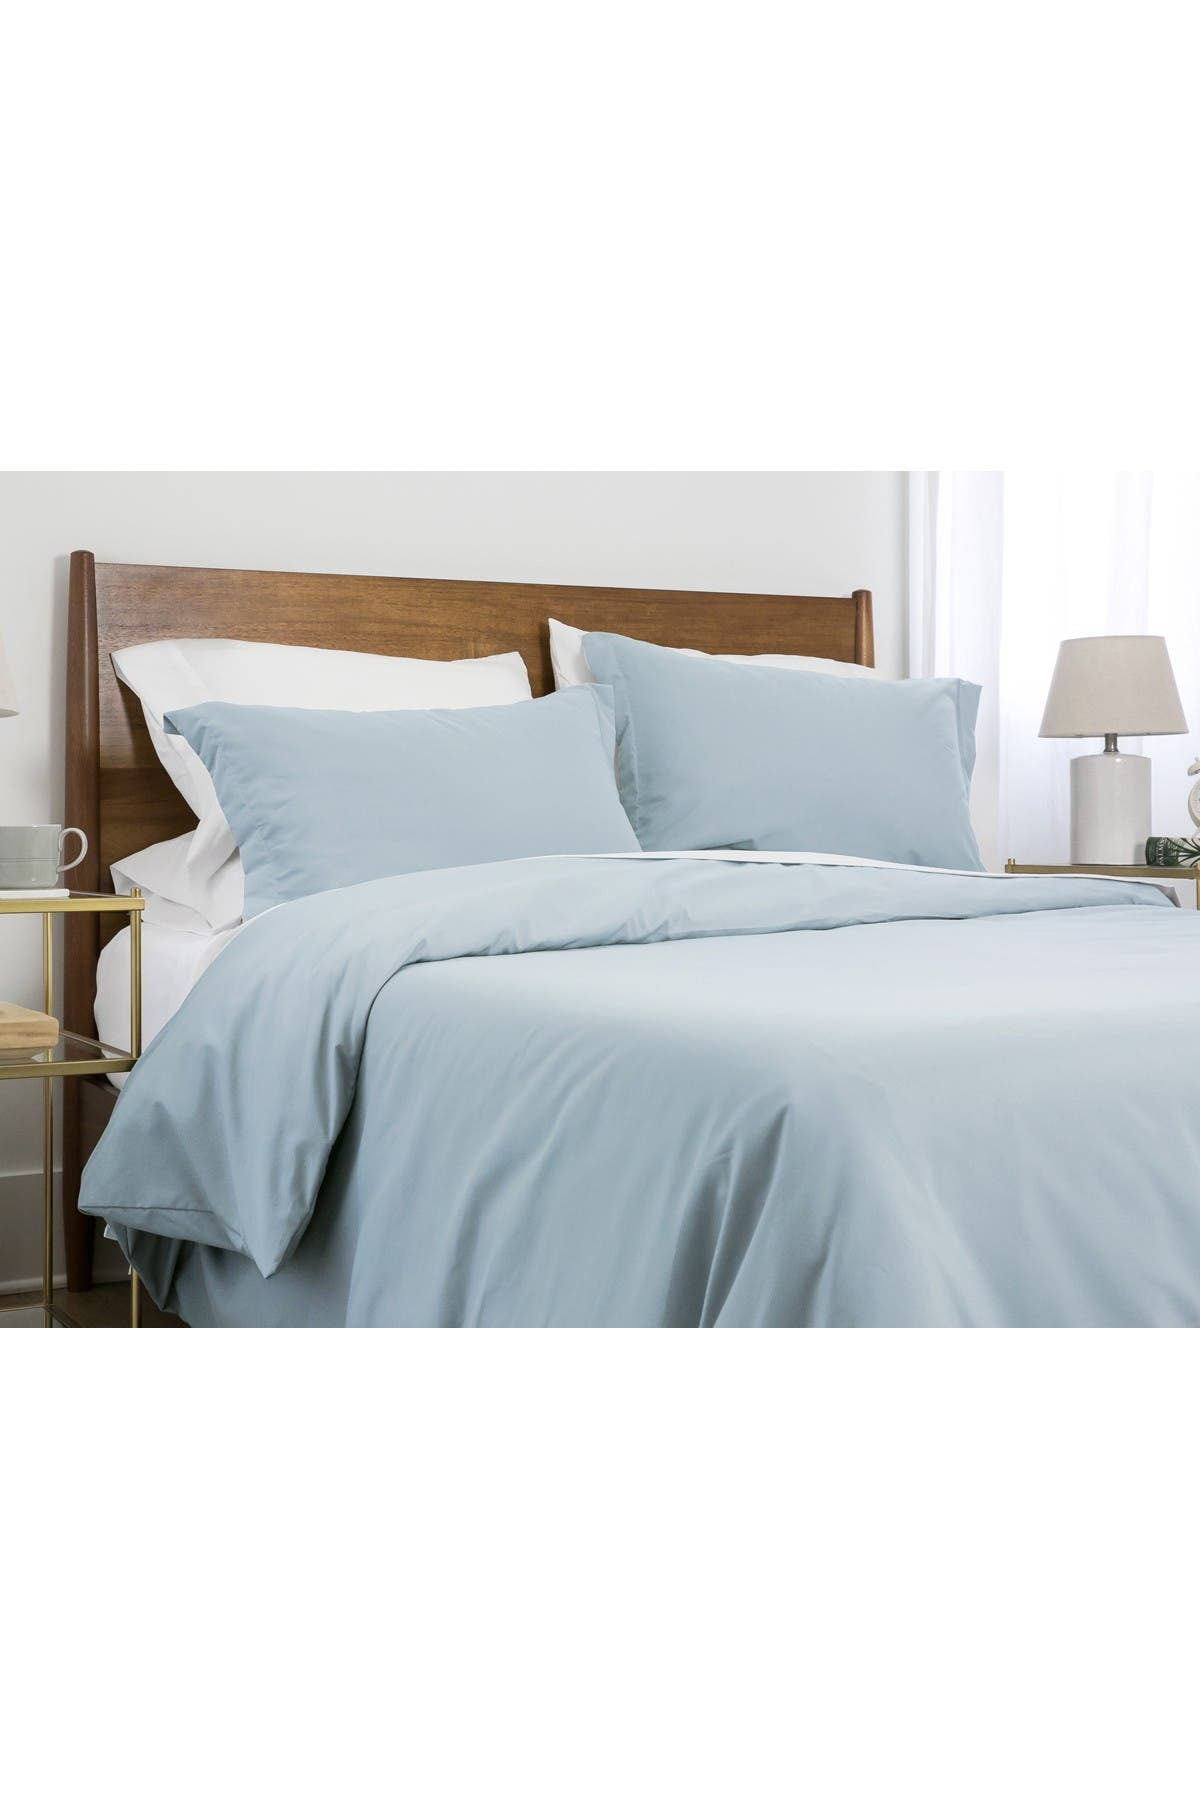 Image of SOUTHSHORE FINE LINENS Queen Classic Duvet Cover Set with Pre-Washed Fabric - Light Blue